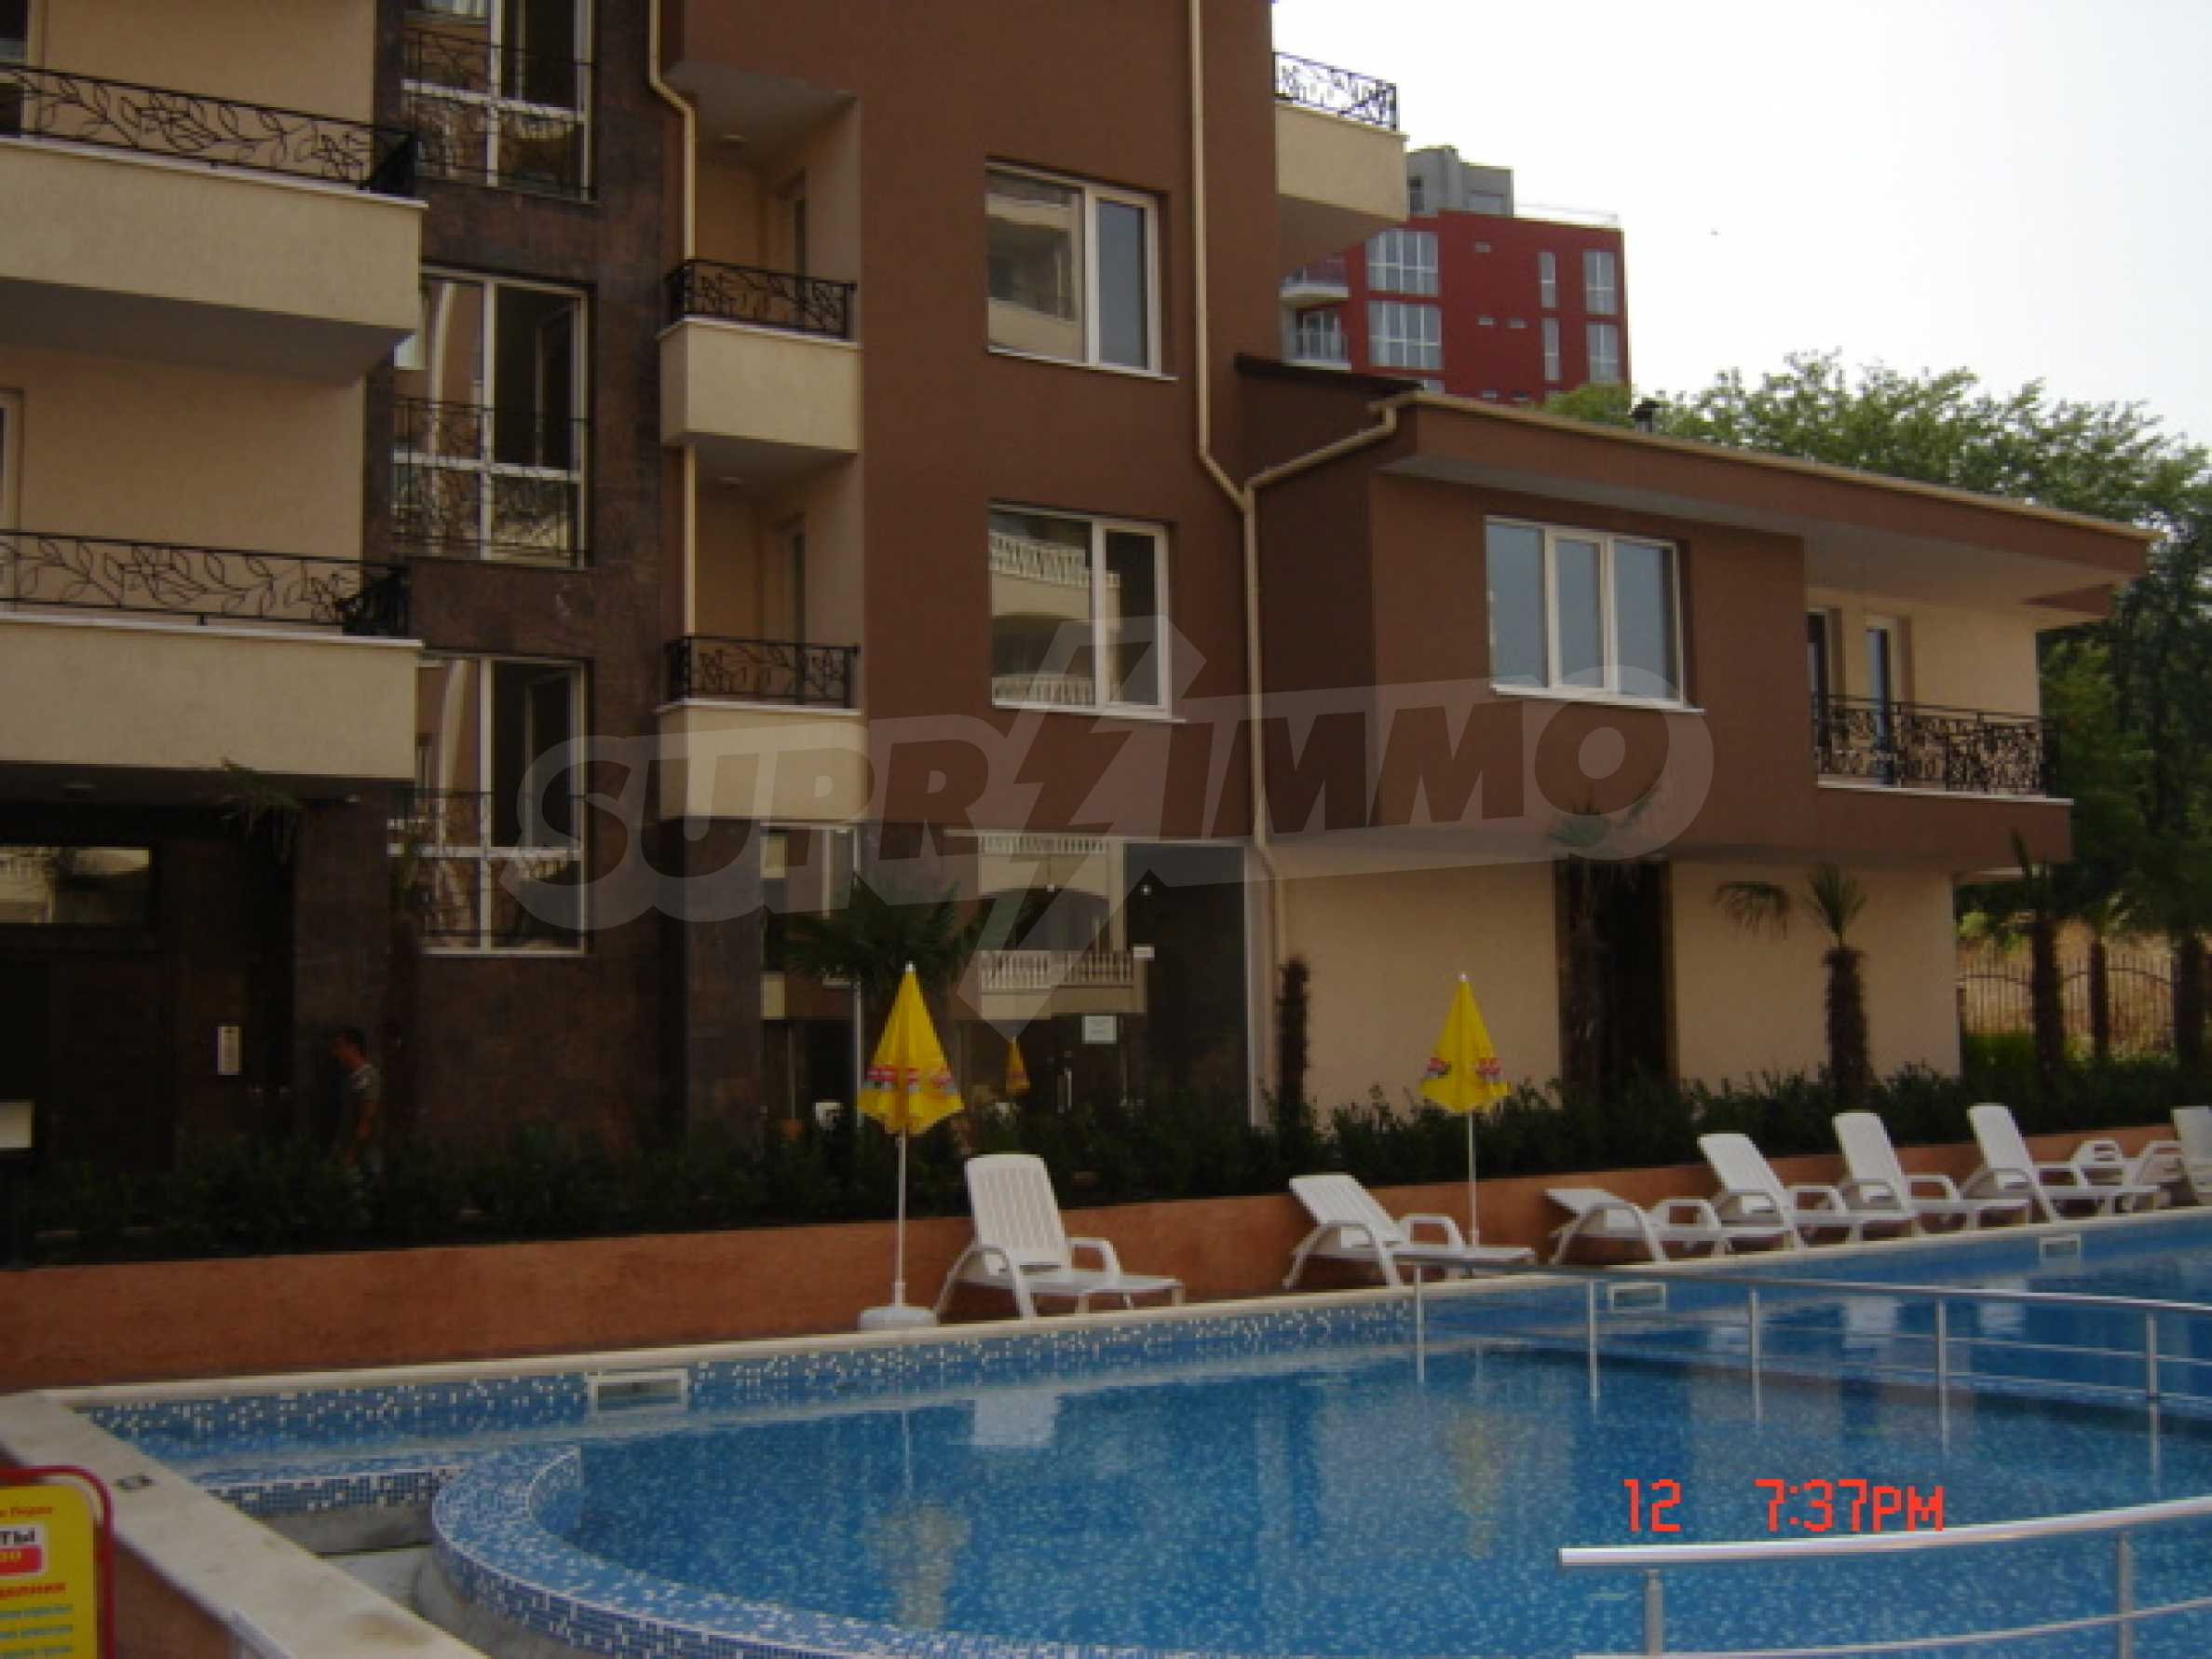 Two-bedroom apartment in a luxury gated development in Burgas 12